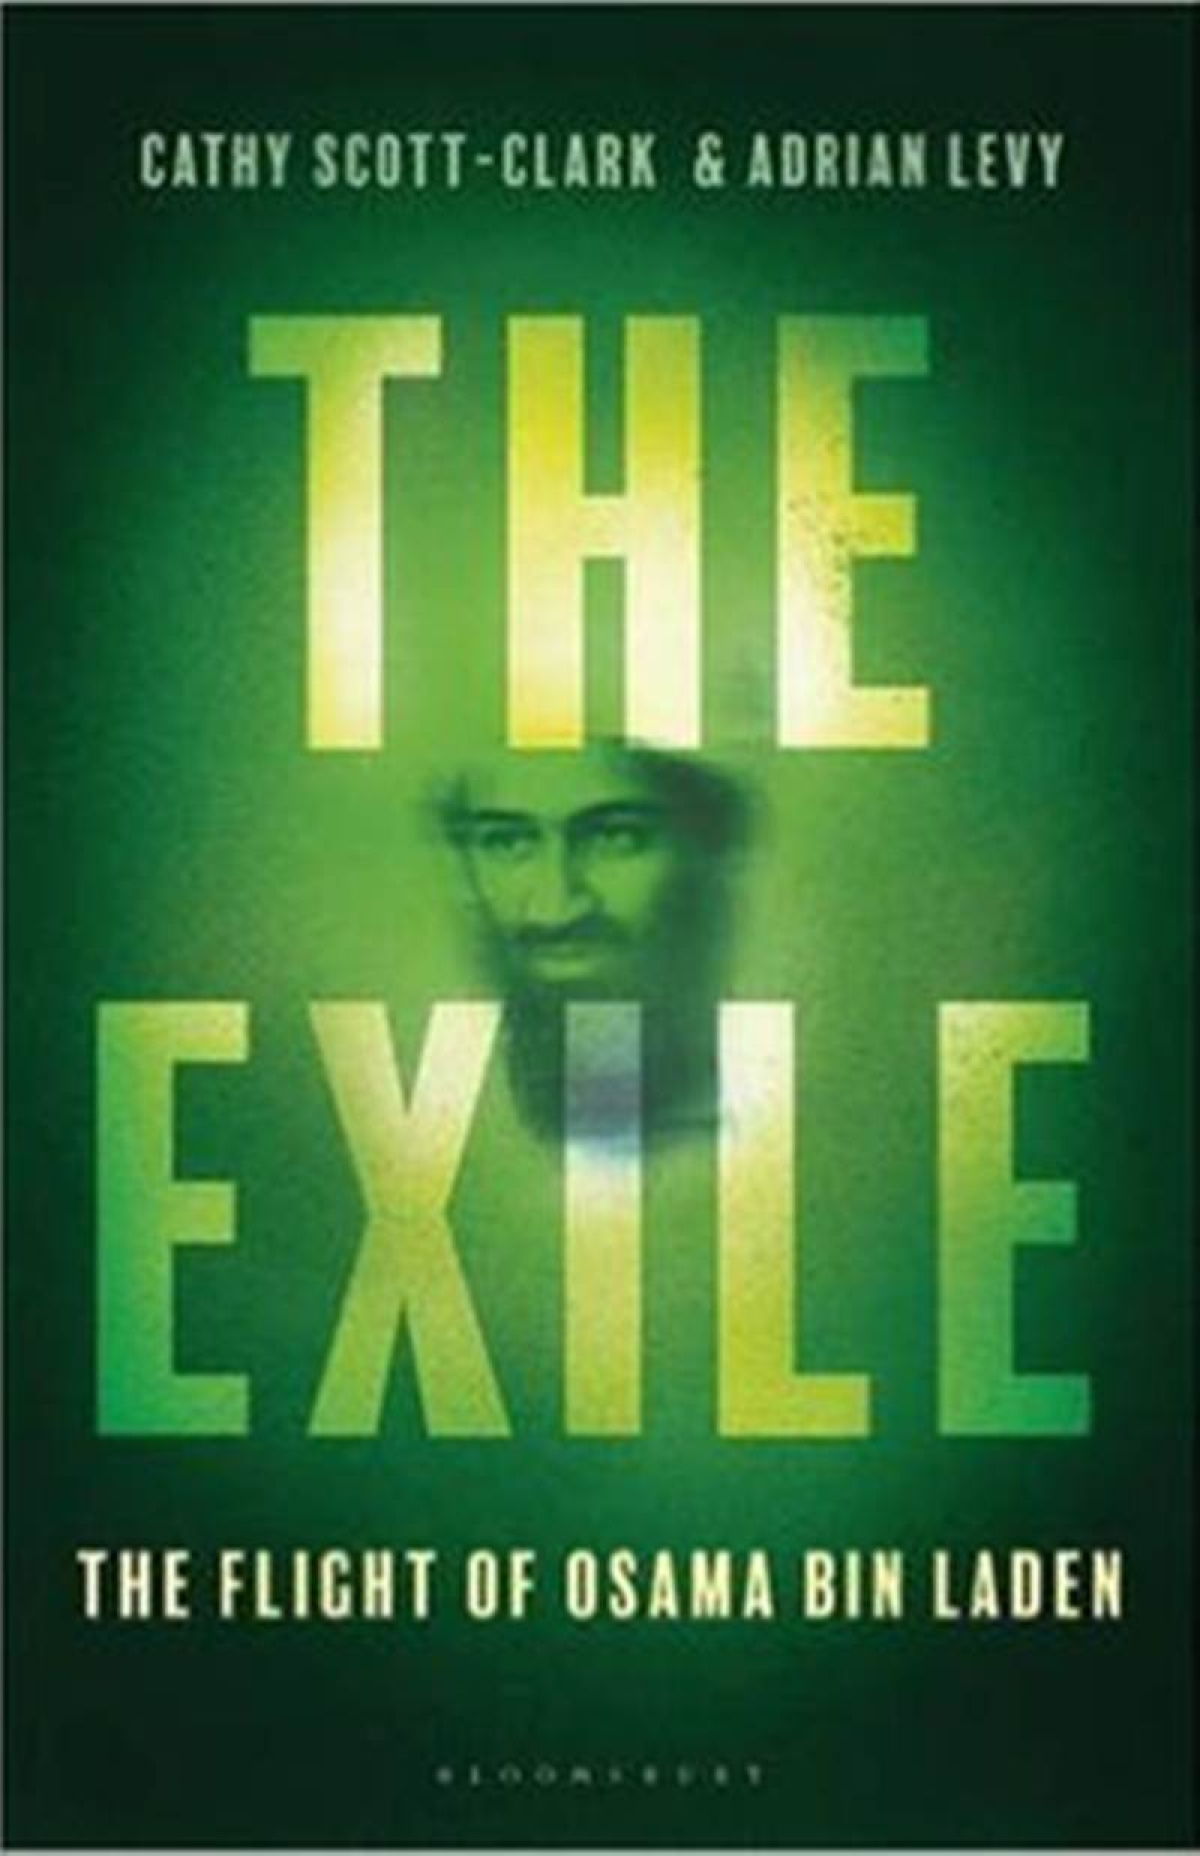 The Exile: The Stunning Inside Story of Osama Bin Laden and Al Qaeda in Flight- Review